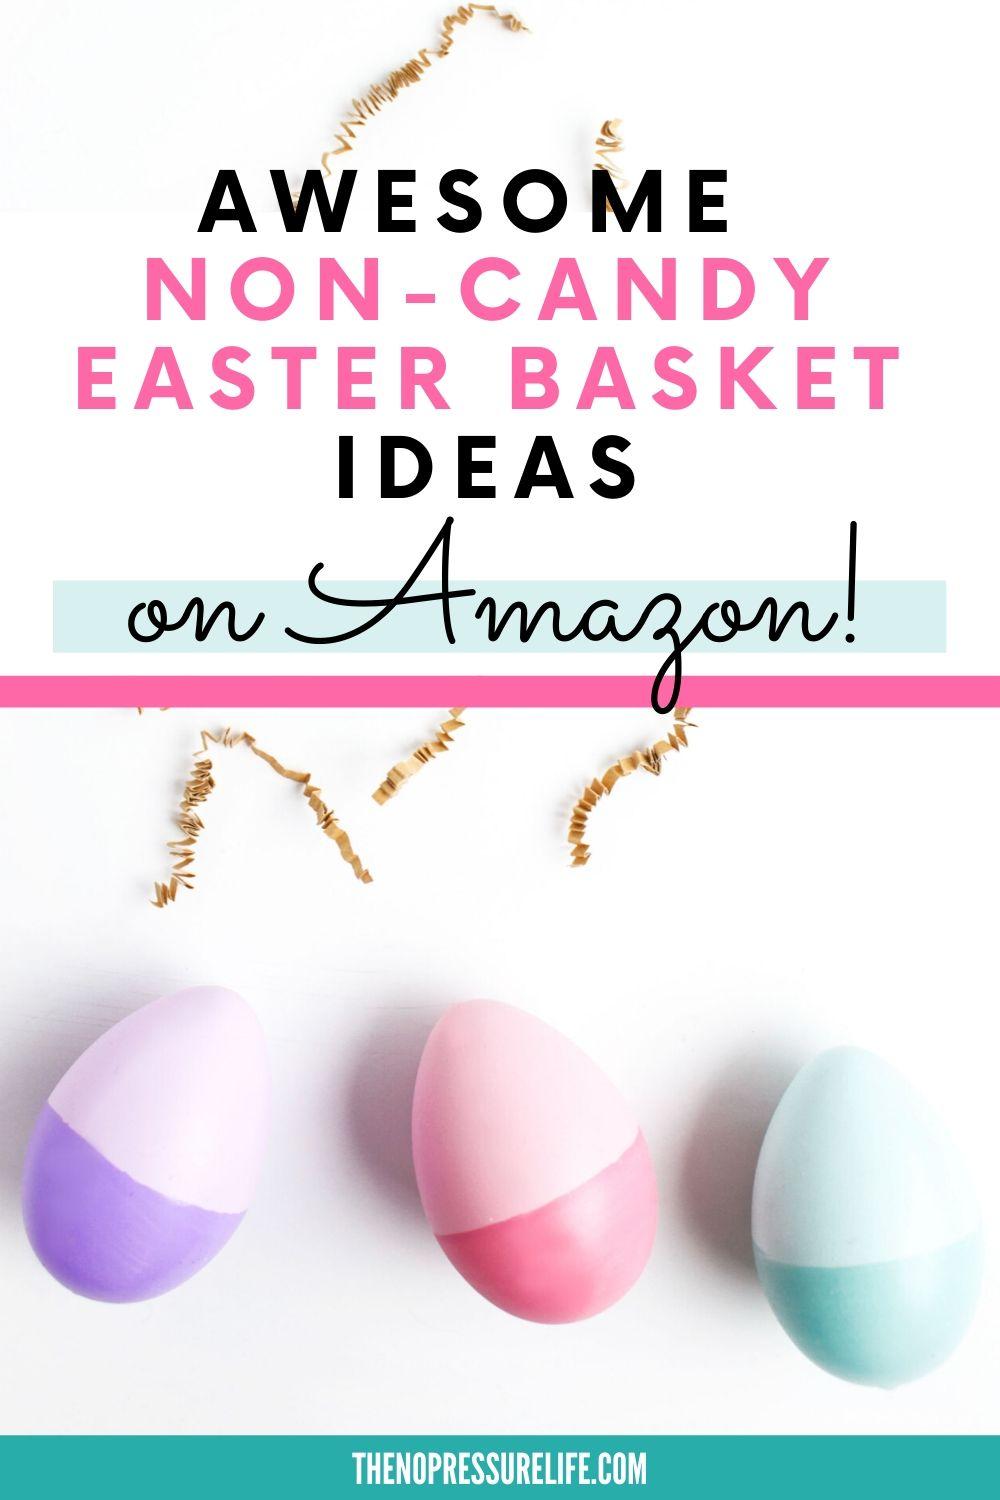 candy-free Easter basket ideas you can buy on Amazon